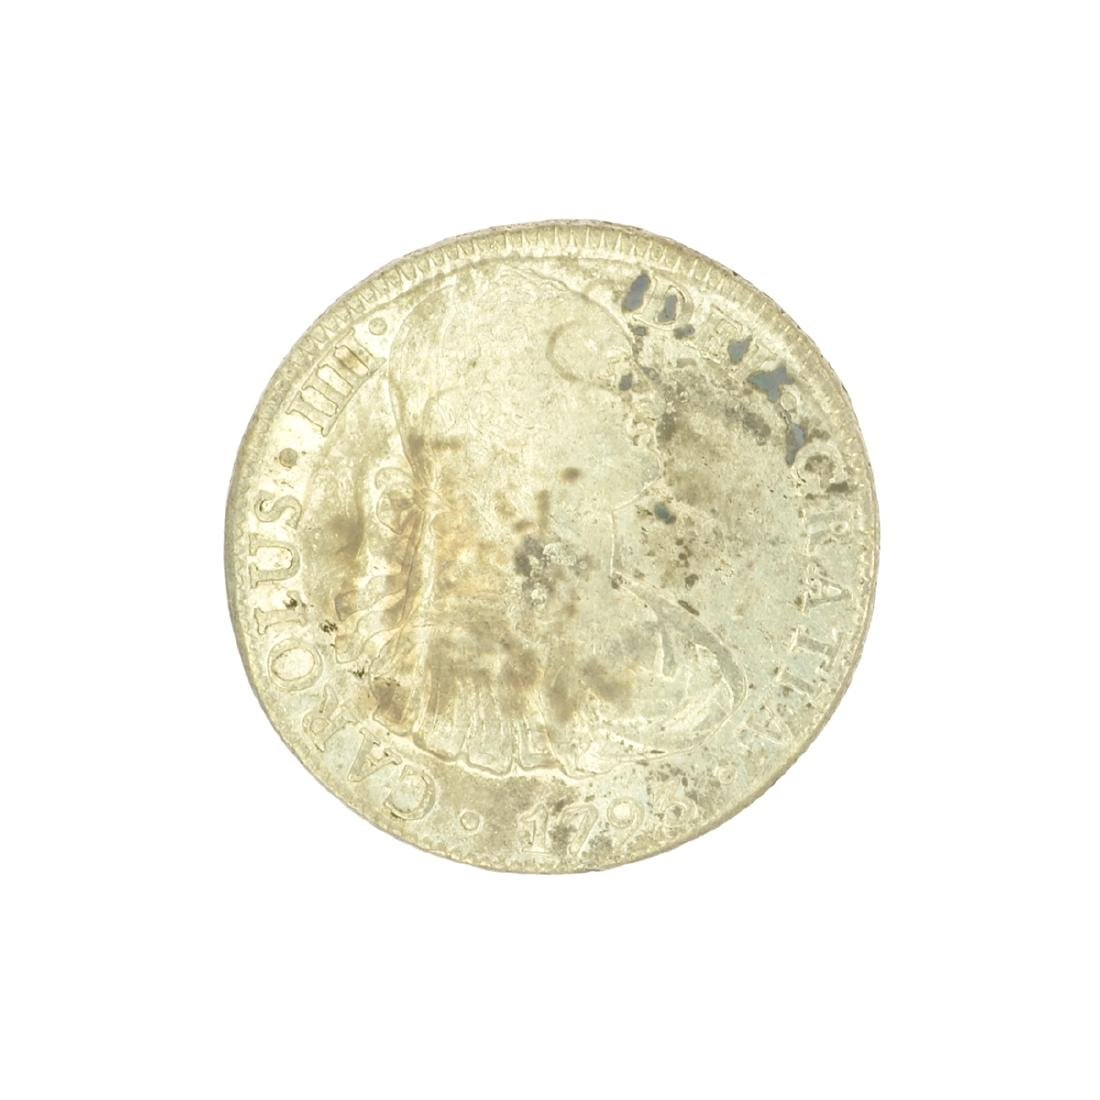 Extremely Rare Early Date 1793 Portrait Reales Very